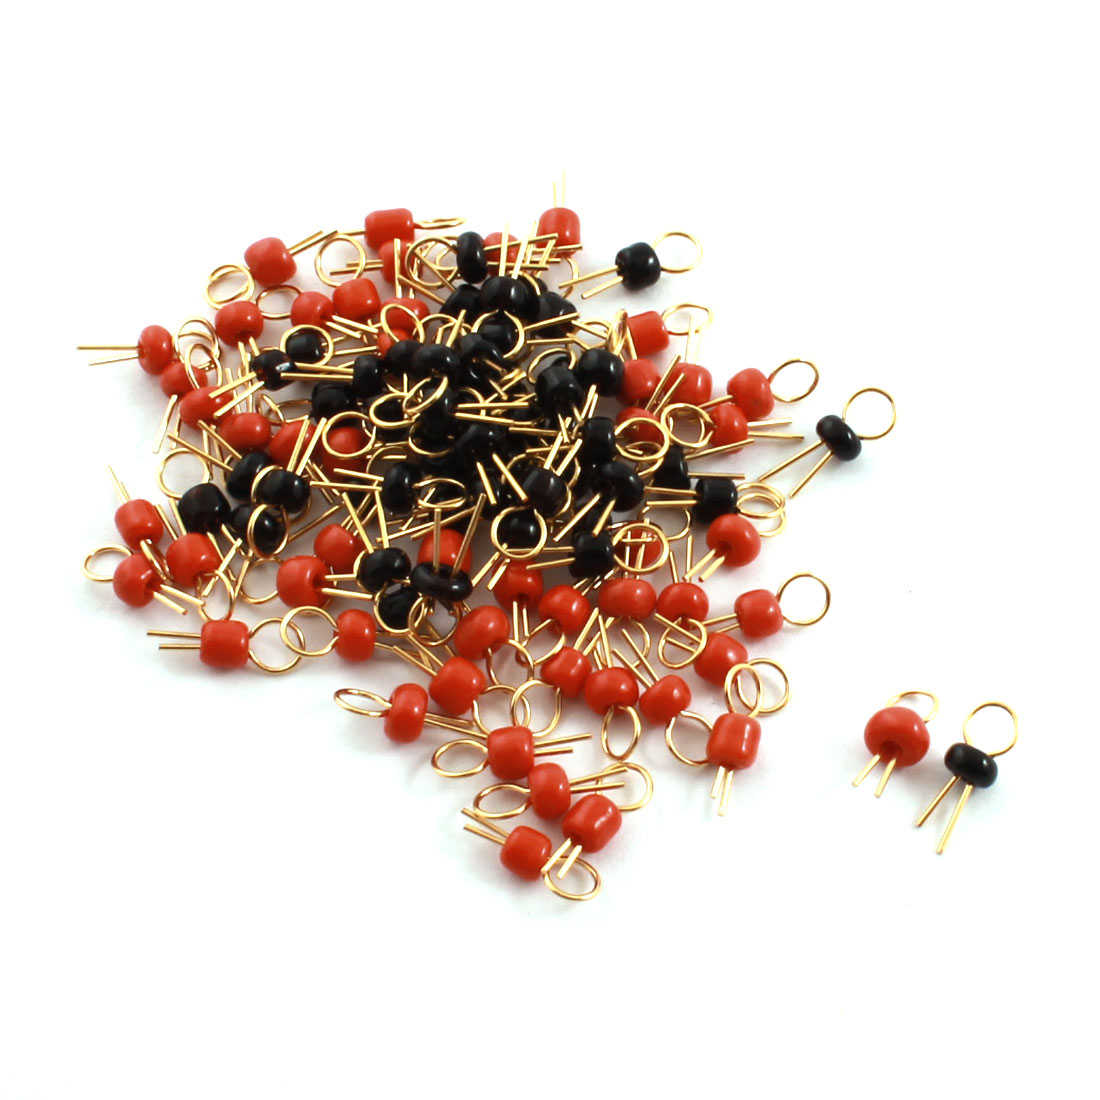 100Pcs Red + Black Ceramic Bead 3.2mm Head Dia Gold Tone Copper PCB Test Pin Terminals